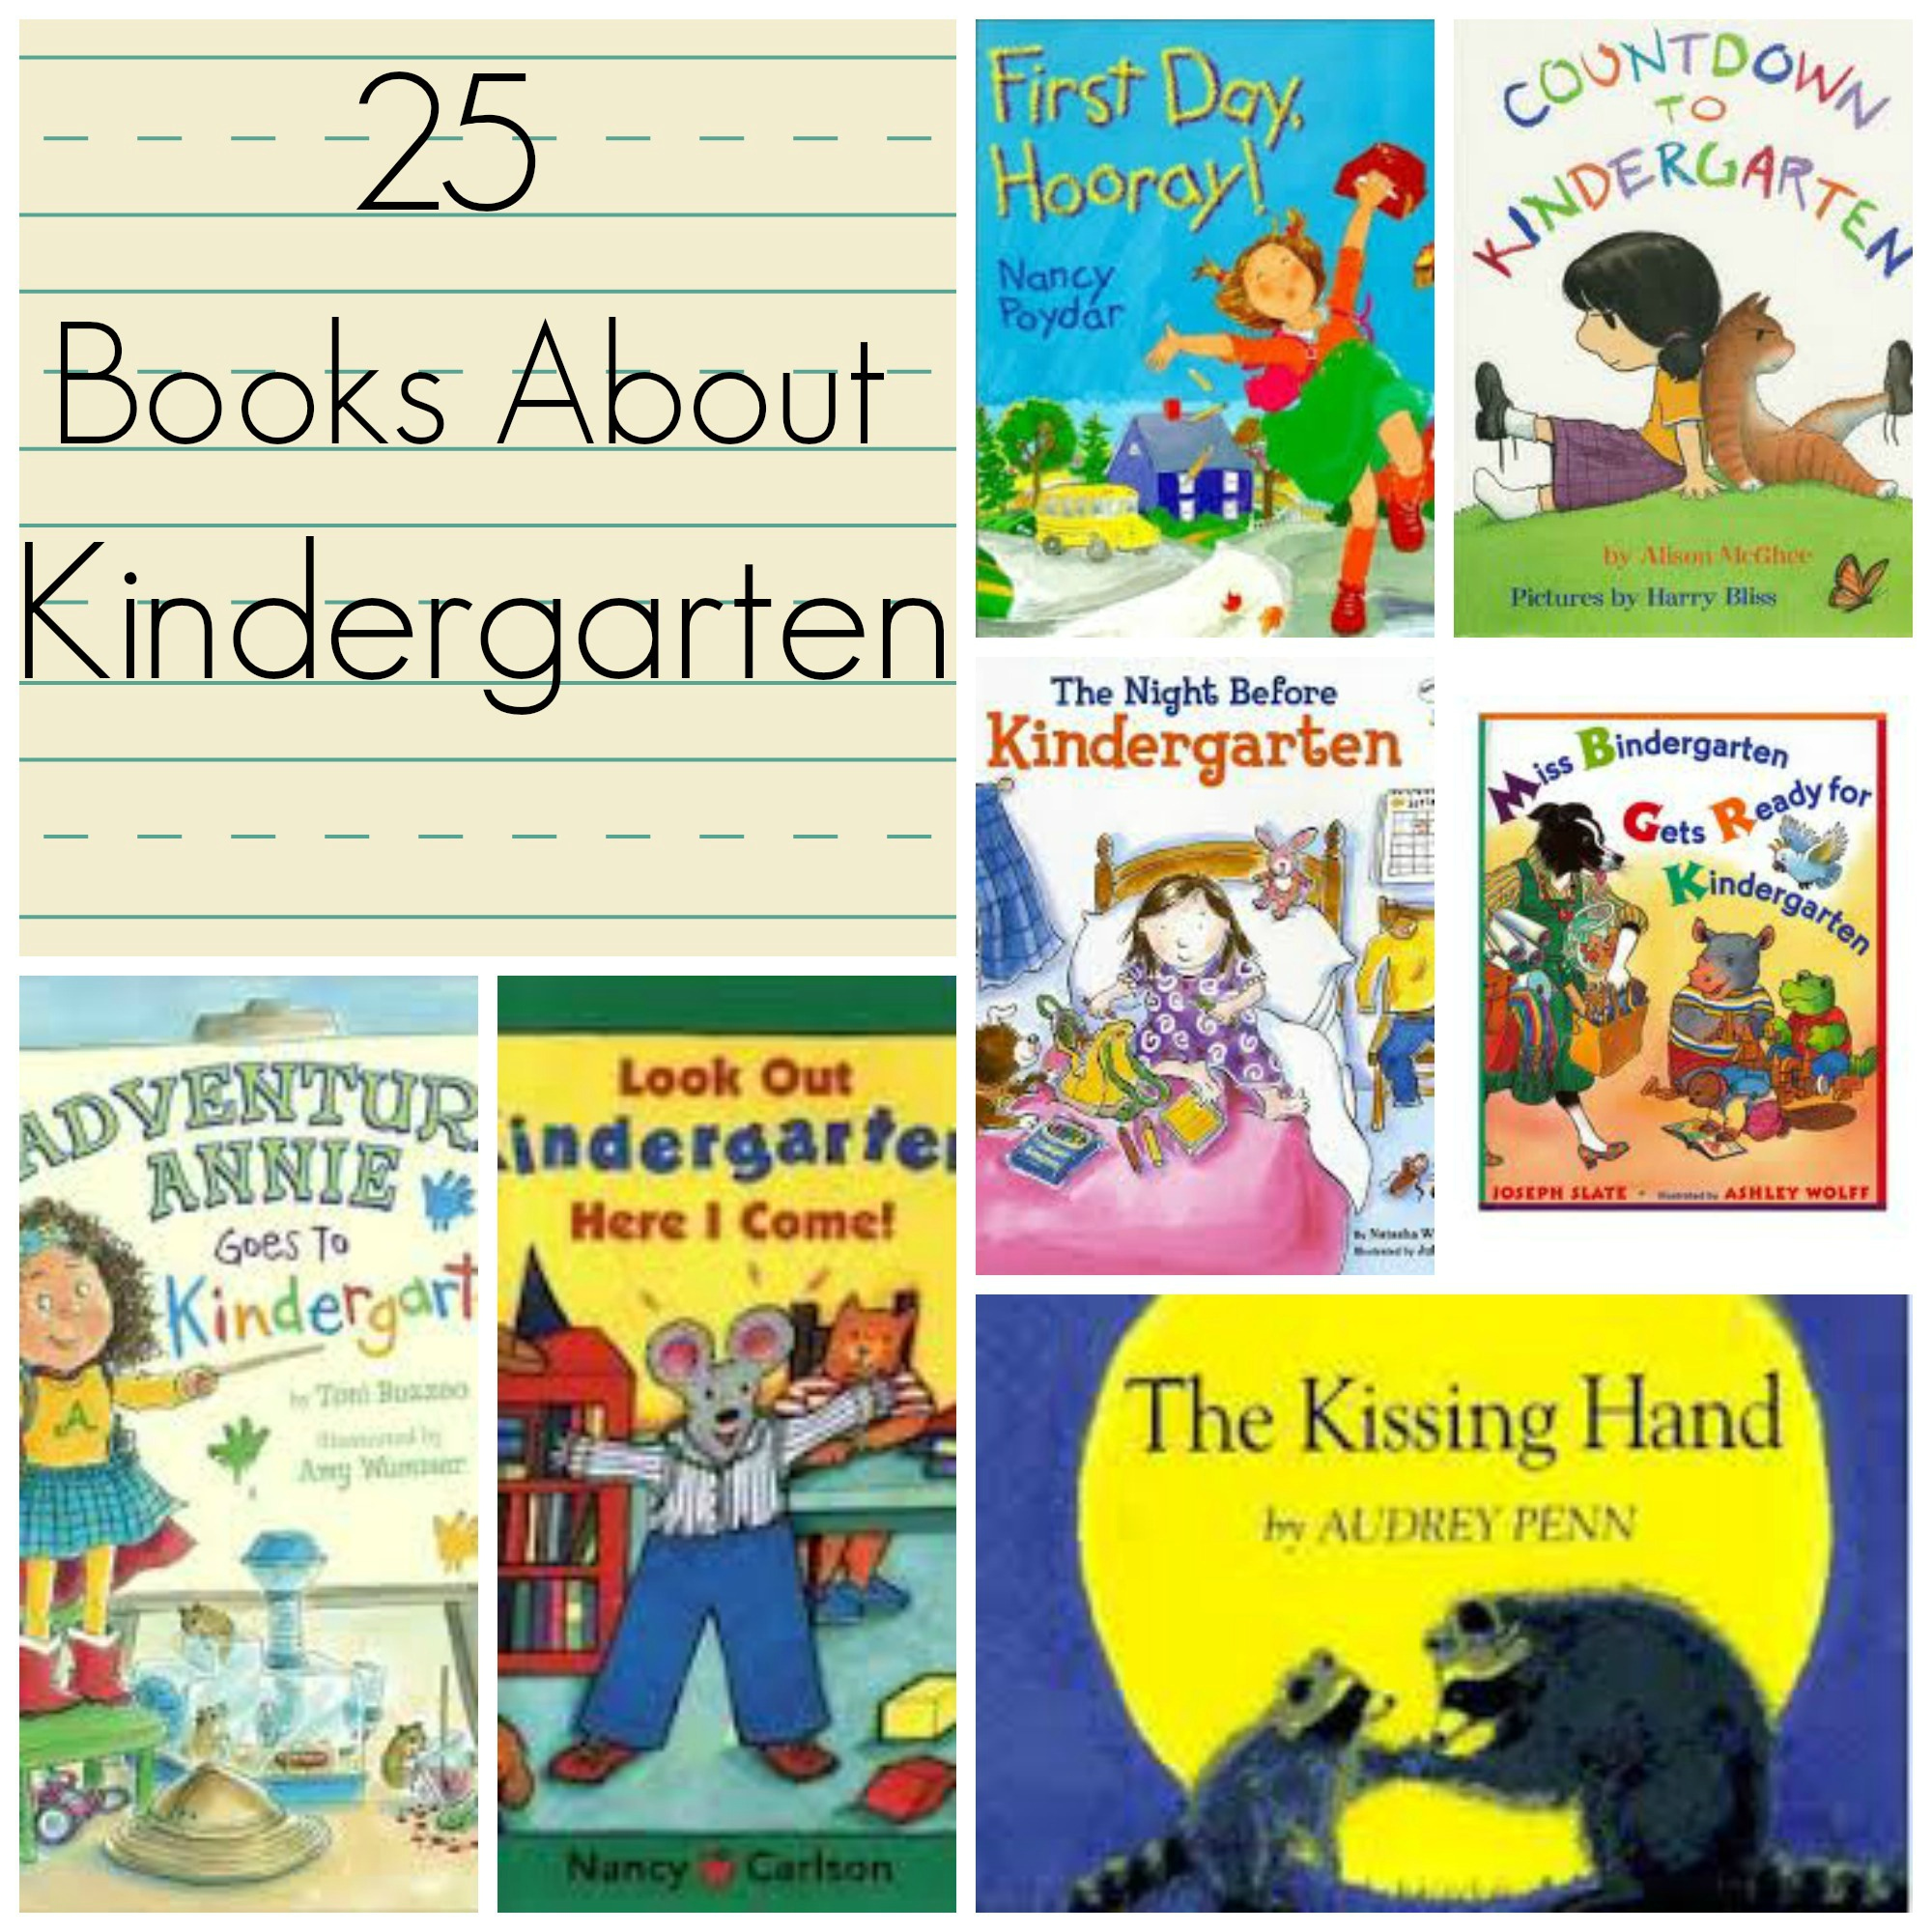 25 Books About Kindergarten